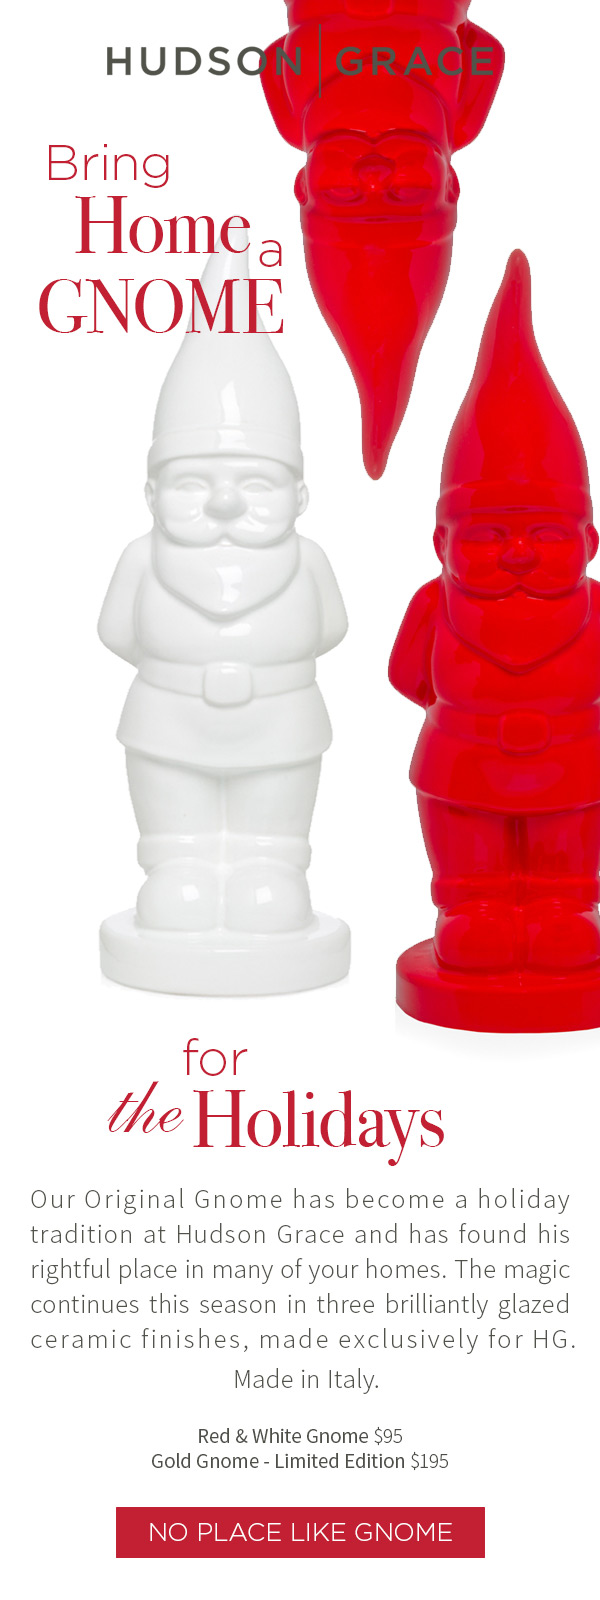 Bring Home a Gnome for the Holidays. Our Original Gnome has become a holiday tradition at Hudson Grace and has found his rightful place in many of your homes. The magic continues this season in three brilliantly glazed ceramic finishes, made exclusively for HG. Made in Italy. Red & White Gnome $95 .?Gold Gnome - Limited Edition $195